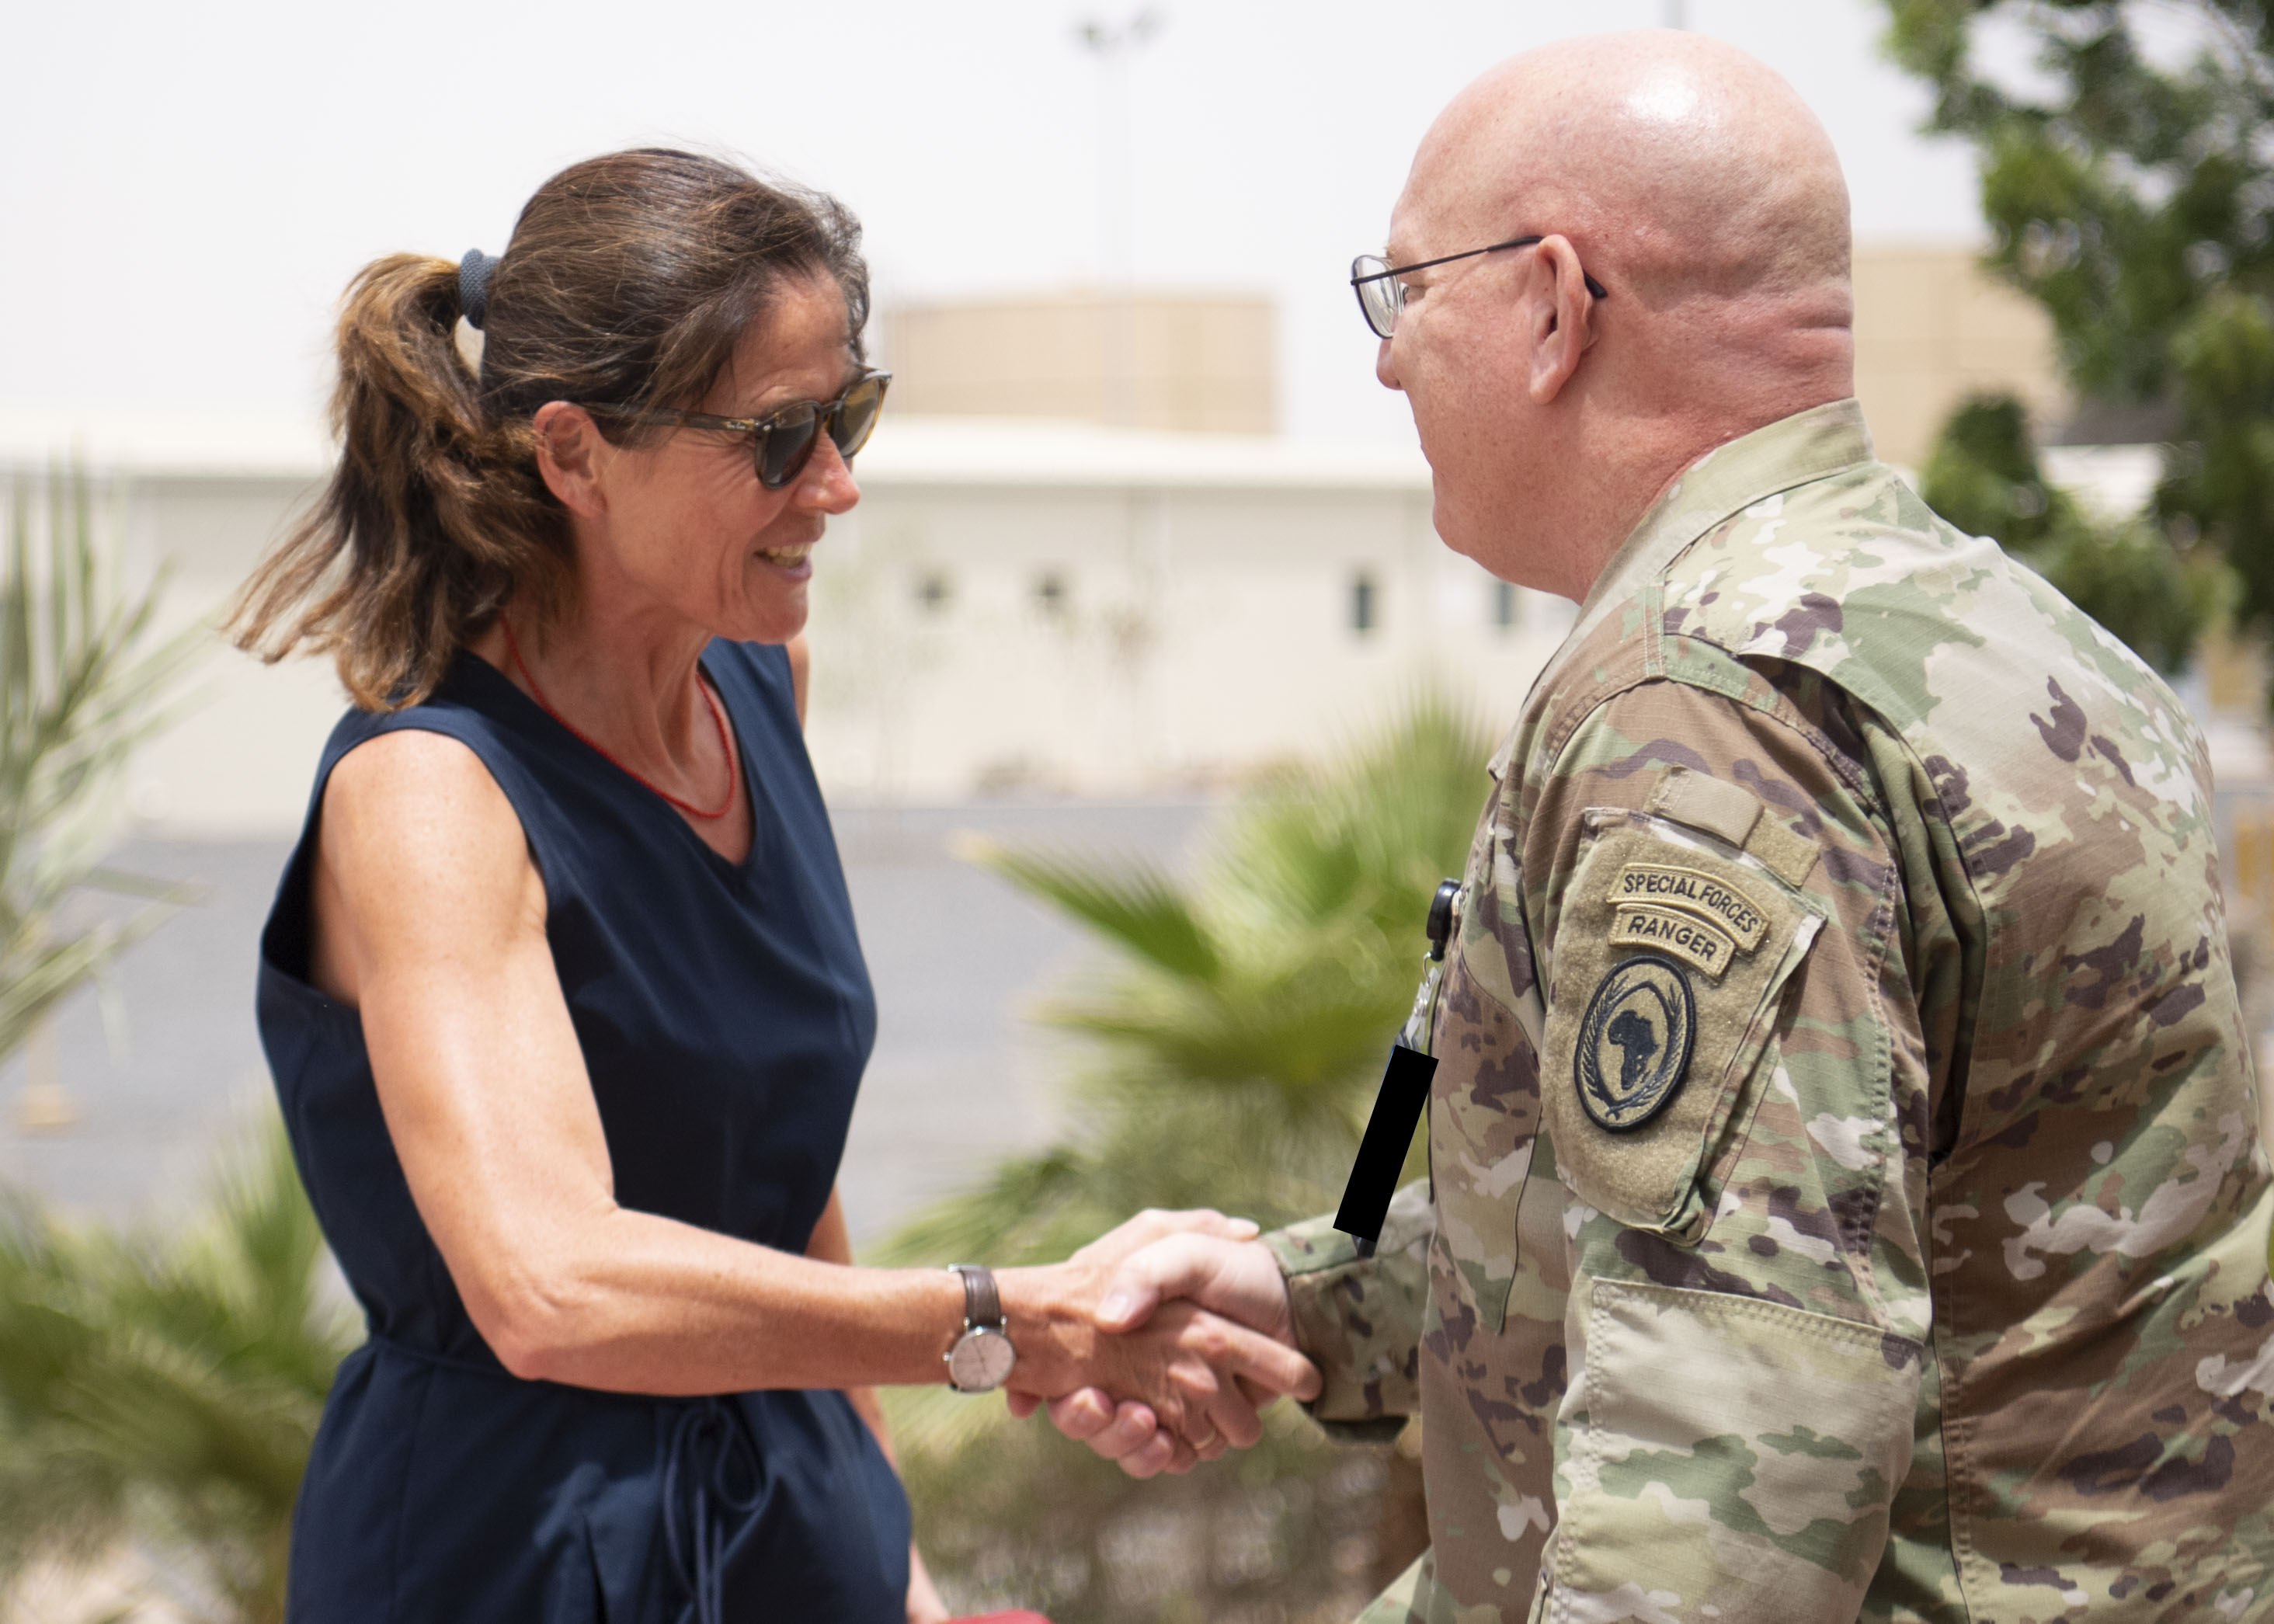 U.S. Army Maj. Gen. Michael D. Turello, commanding general of Combined Joint Task Force-Horn of Africa (CJTF-HOA), right, greets Anke Holstein, Ambassador of Germany to Djibouti, at Camp Lemonnier, Djibouti, July 3, 2019. While visiting Camp Lemonnier, Holstein learned about the CJTF-HOA mission and toured the installation. (U.S. Air Force photo by Staff Sgt. J.D. Strong II)